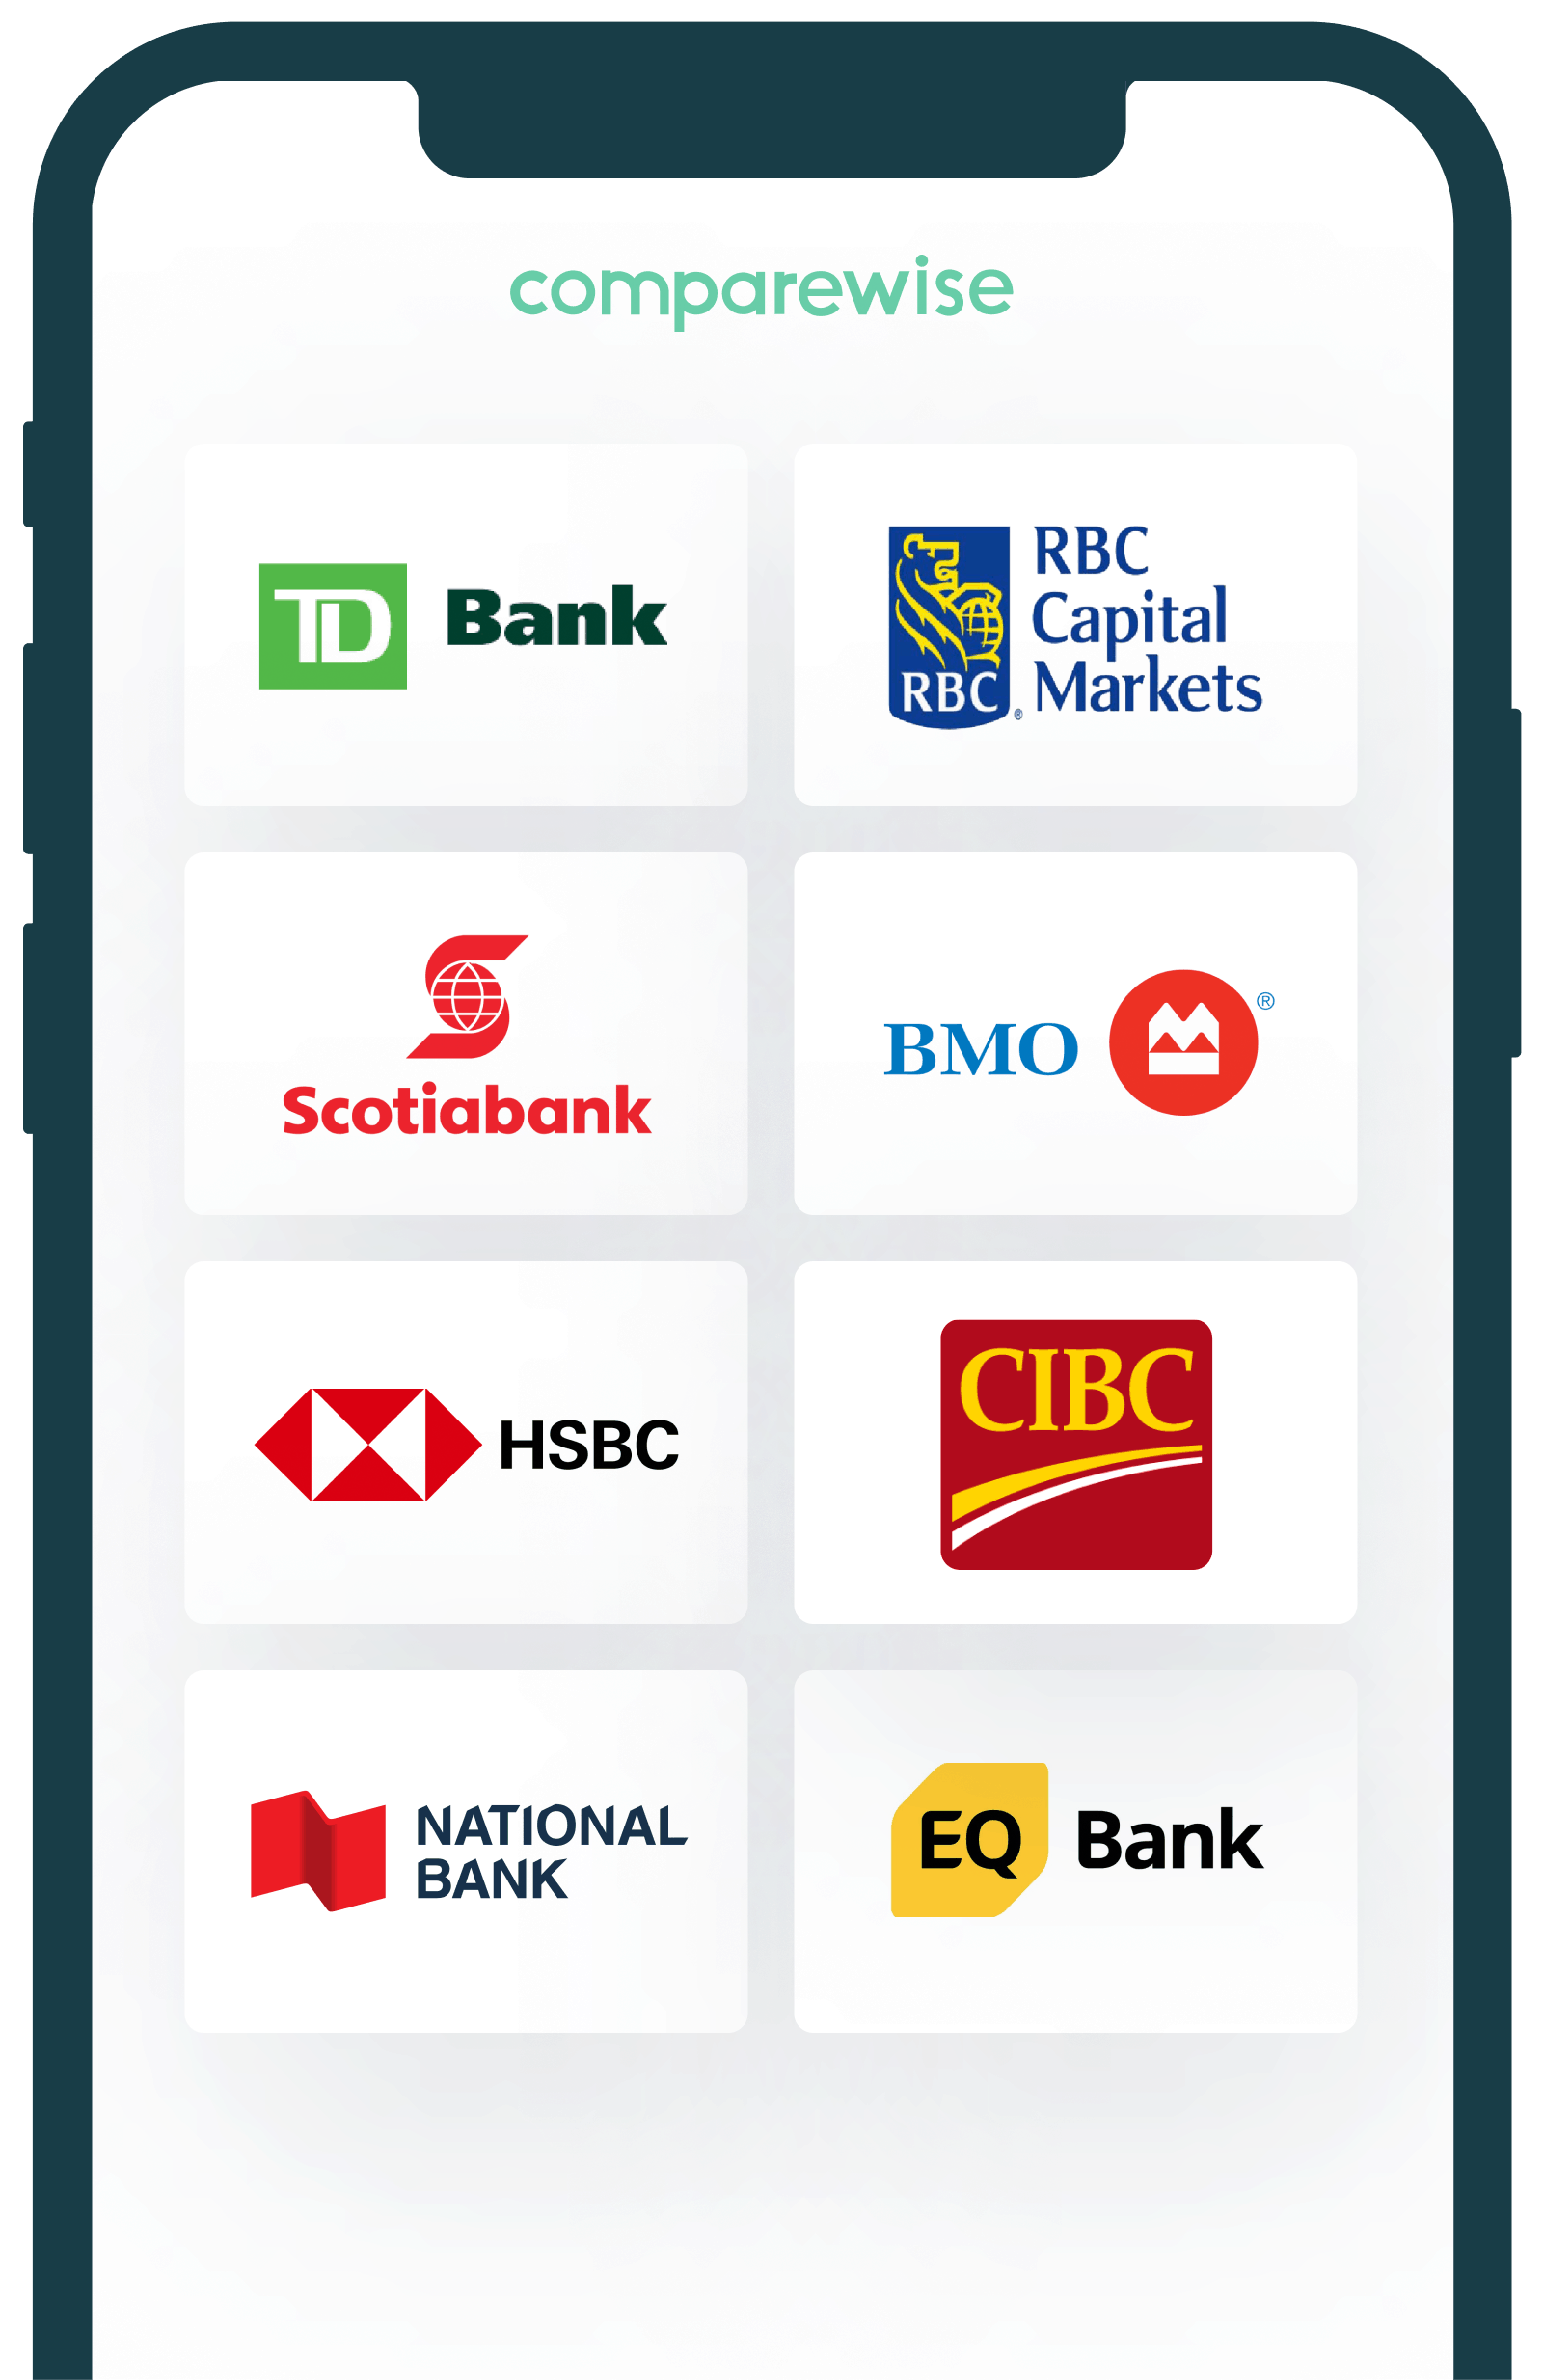 comparewise mobile finance